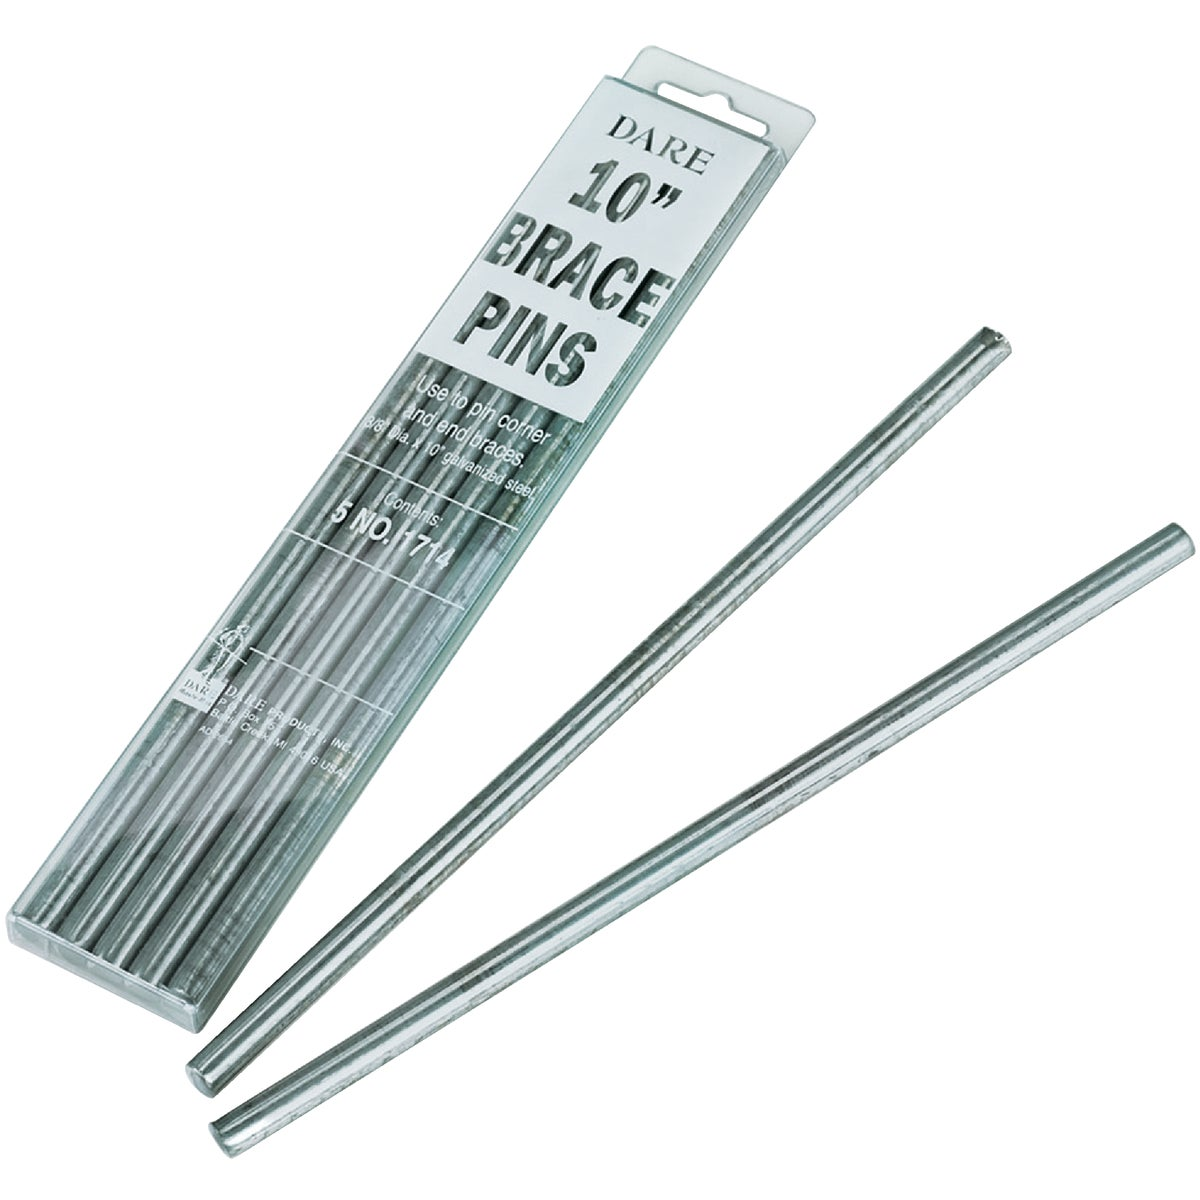 "5PC 10"" BRACE PINS - 1714-5 by Dare Products Inc"